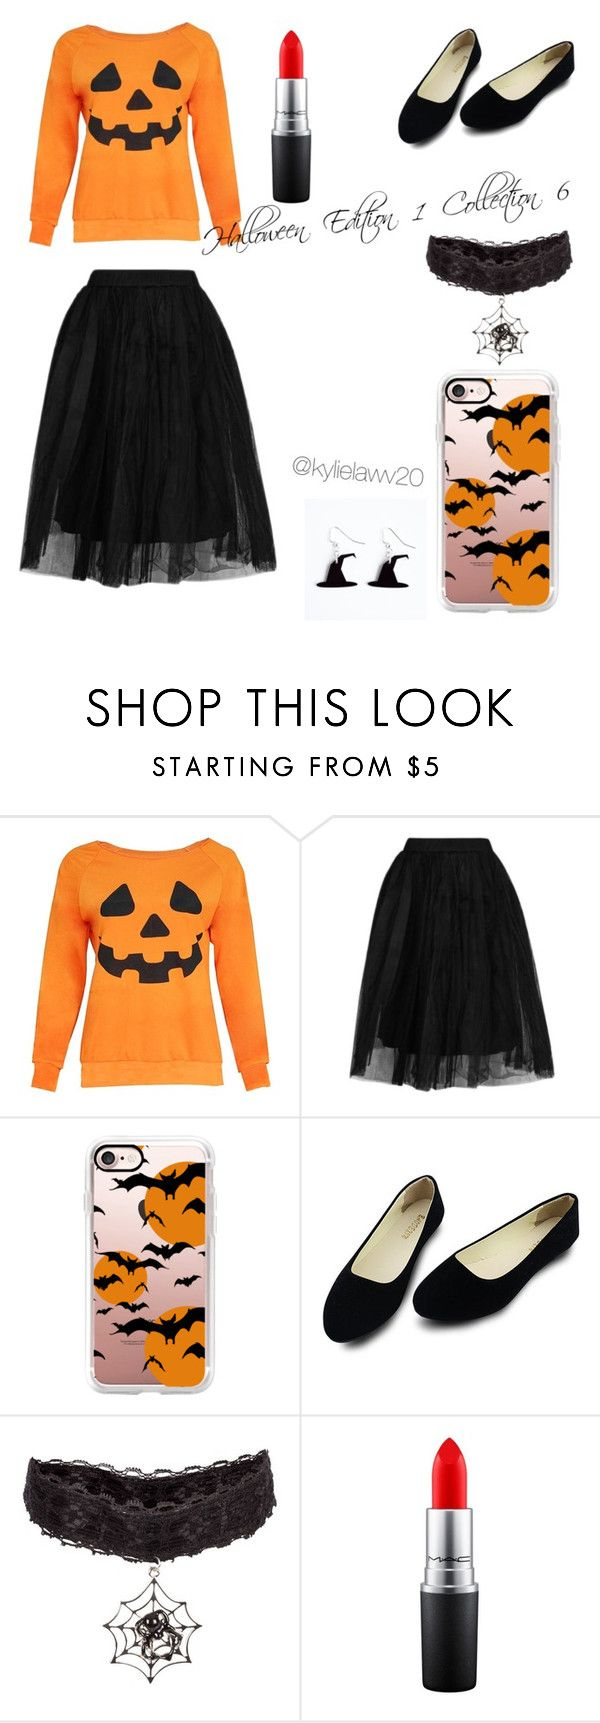 """Halloween Edition 1 Collection 6"" by kylielawv20 ❤ liked on Polyvore featuring beauty, Topshop, Casetify and MAC Cosmetics"